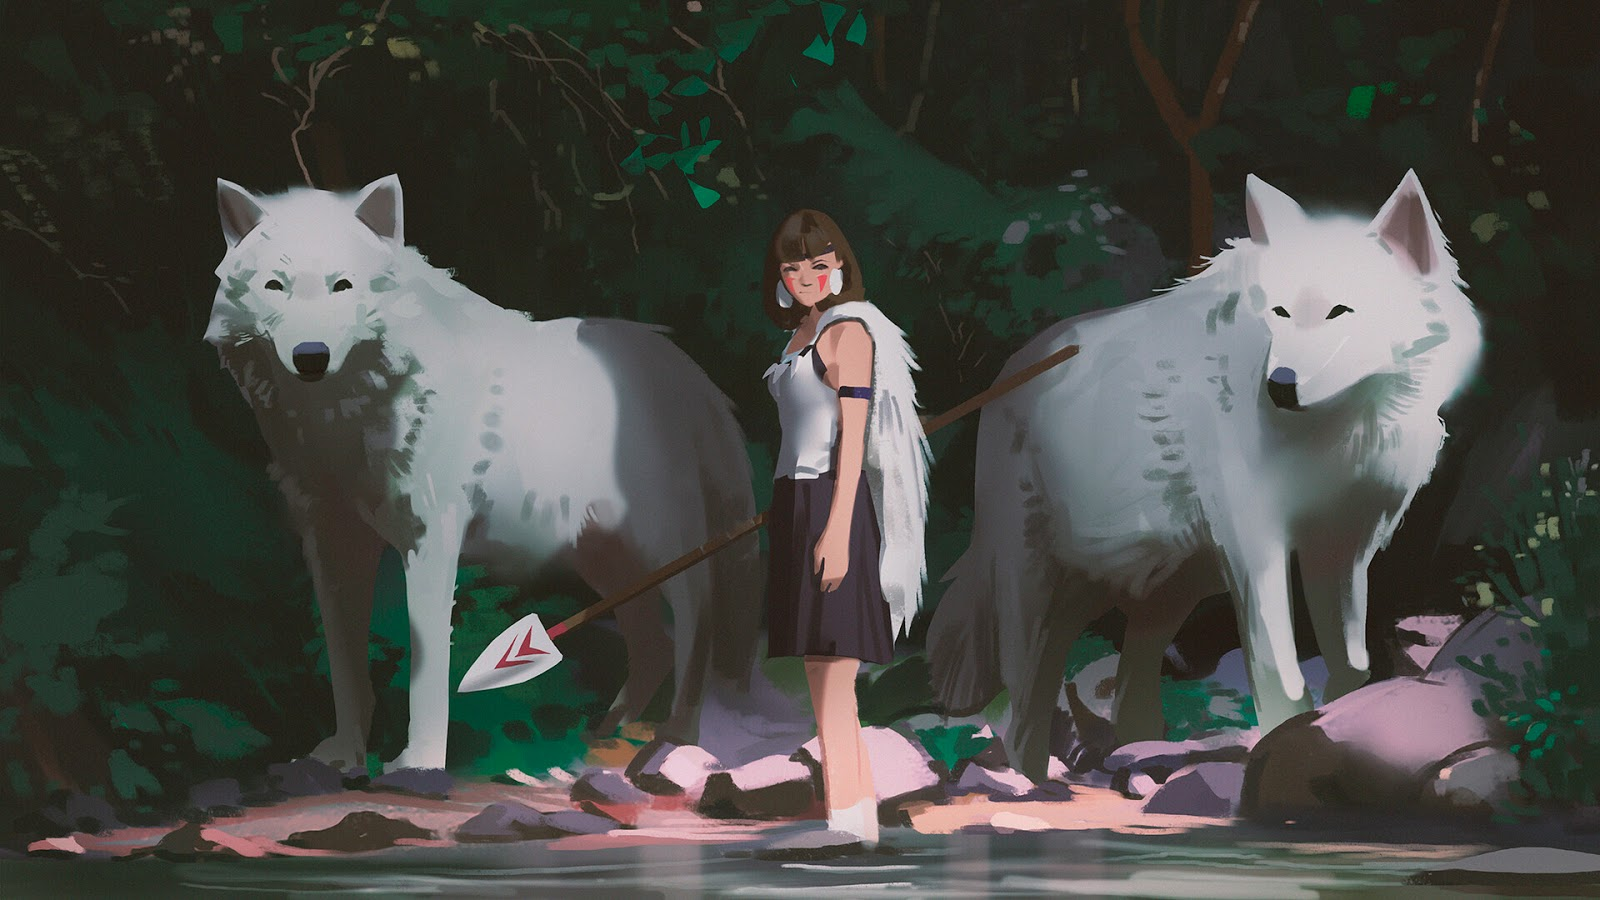 animes anime princess mononoke